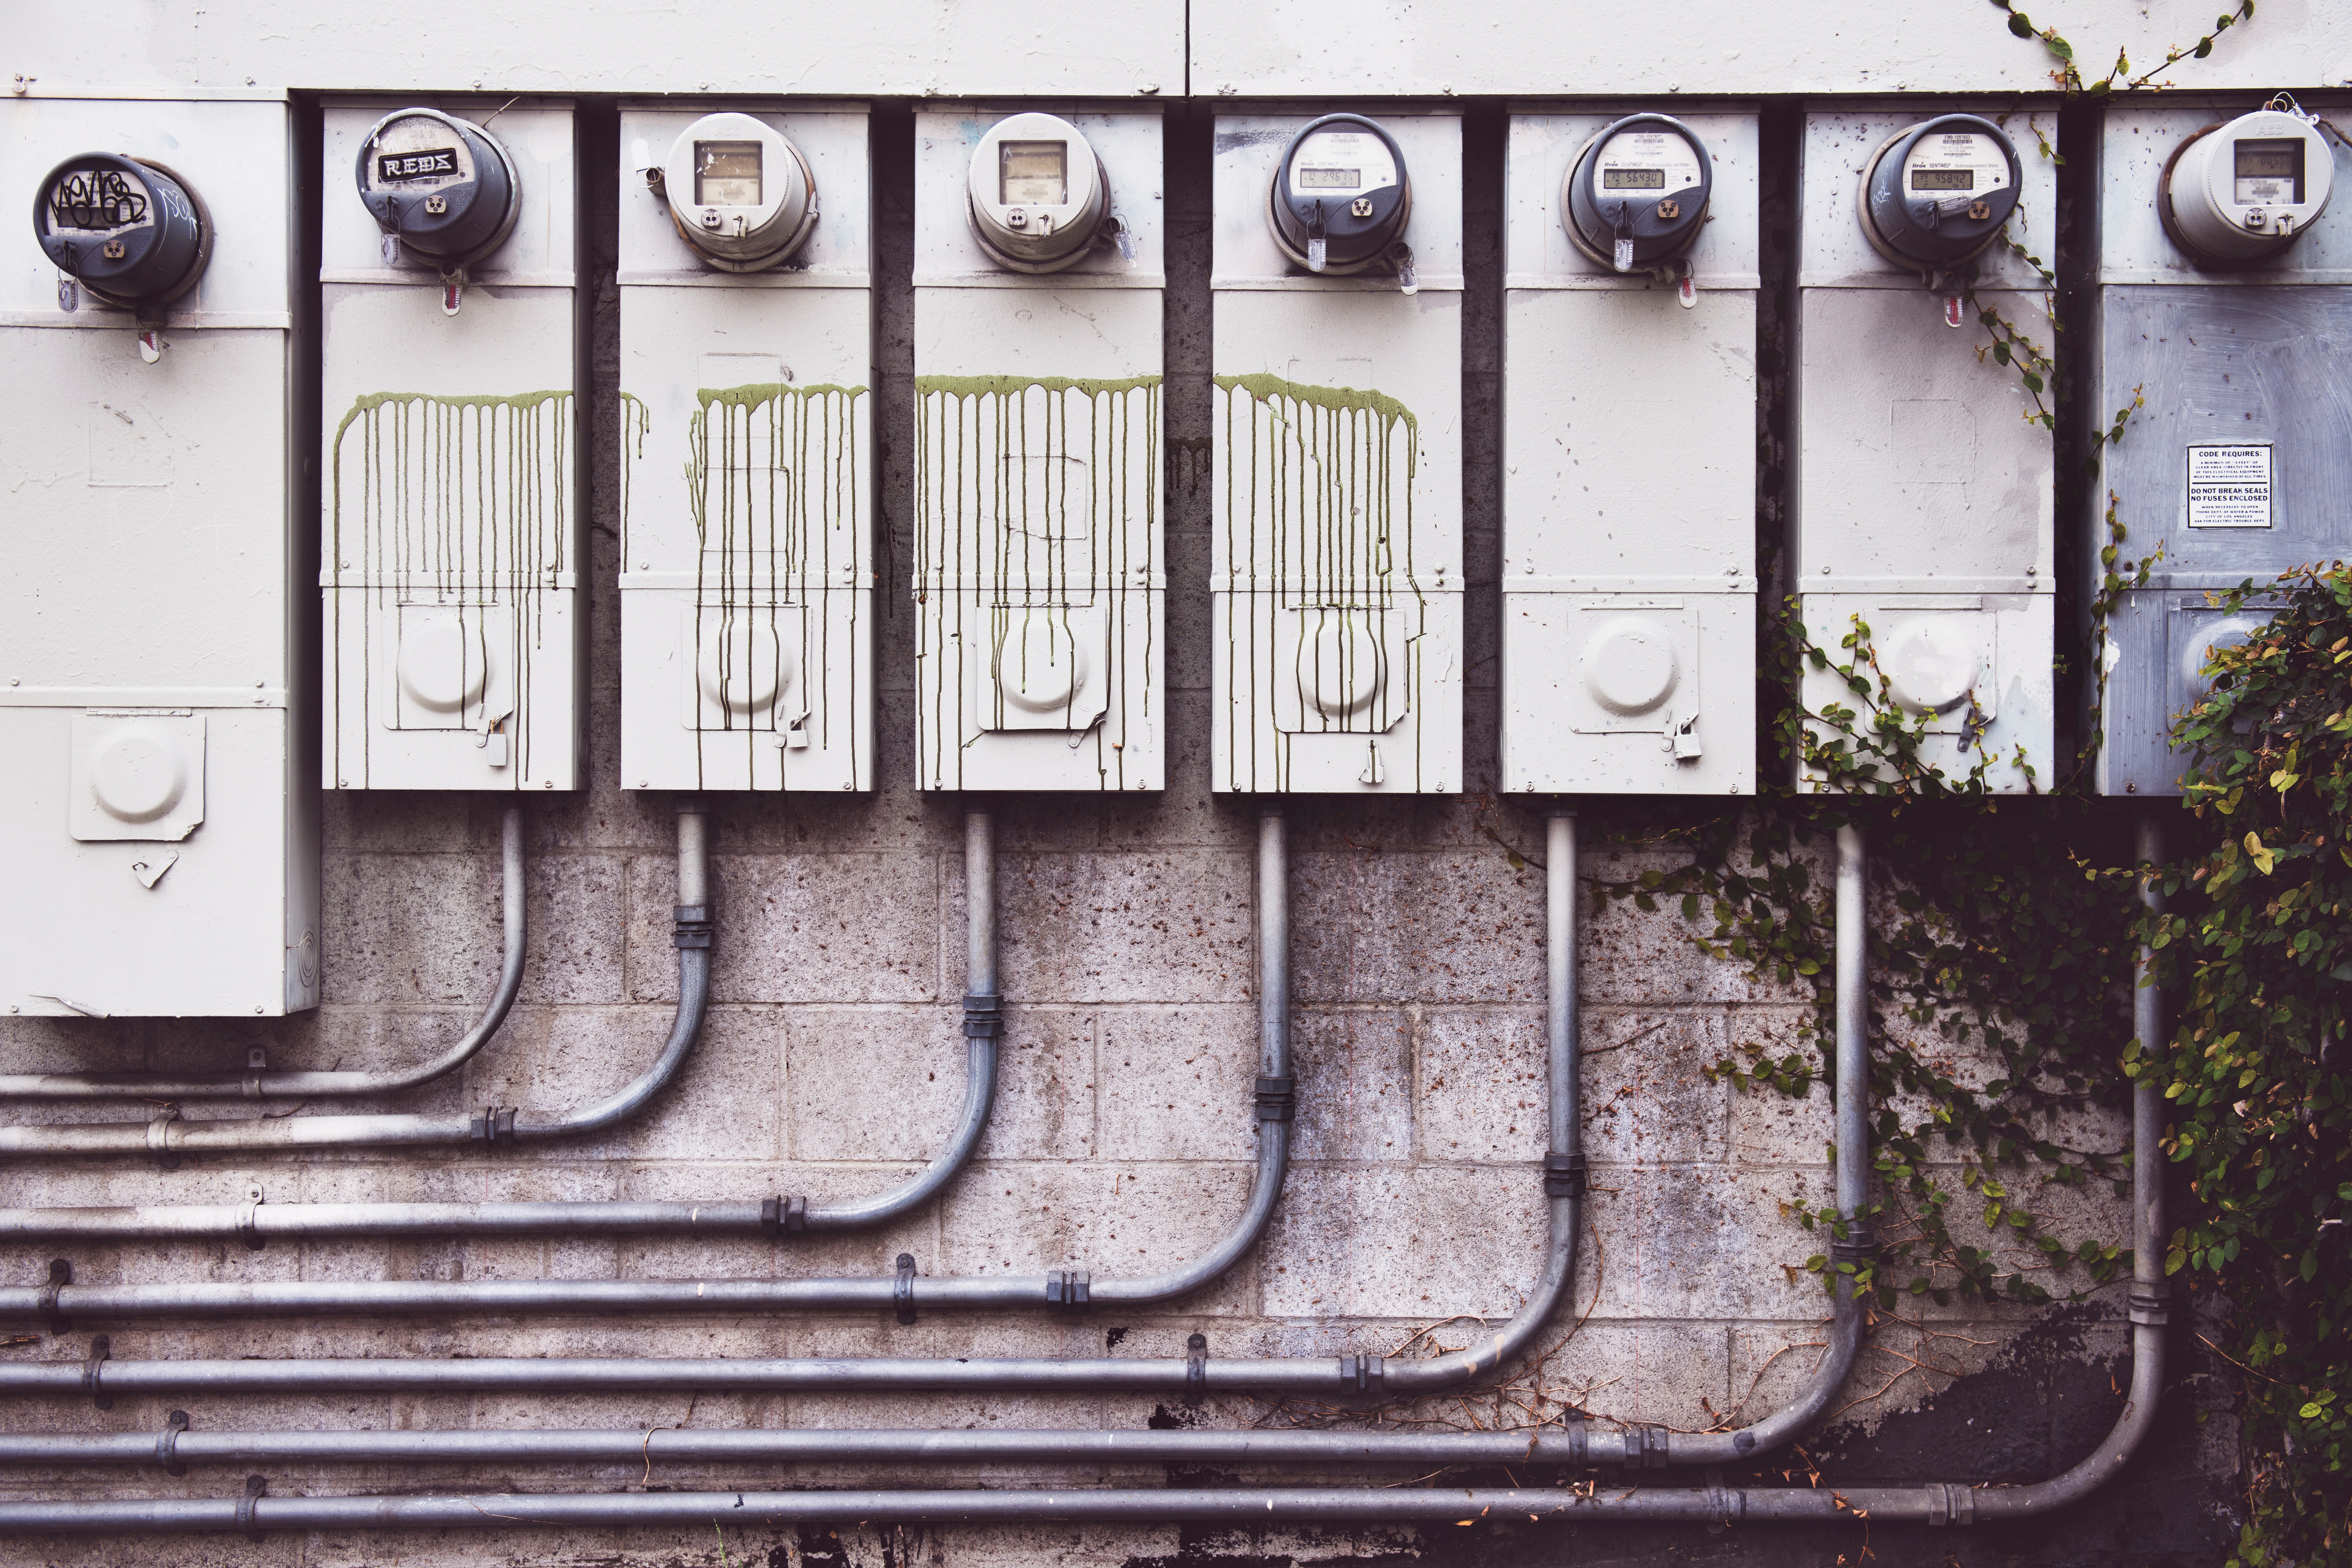 Eight Electrical Metric Meters, Steel, Security, Street, Technology, HQ Photo